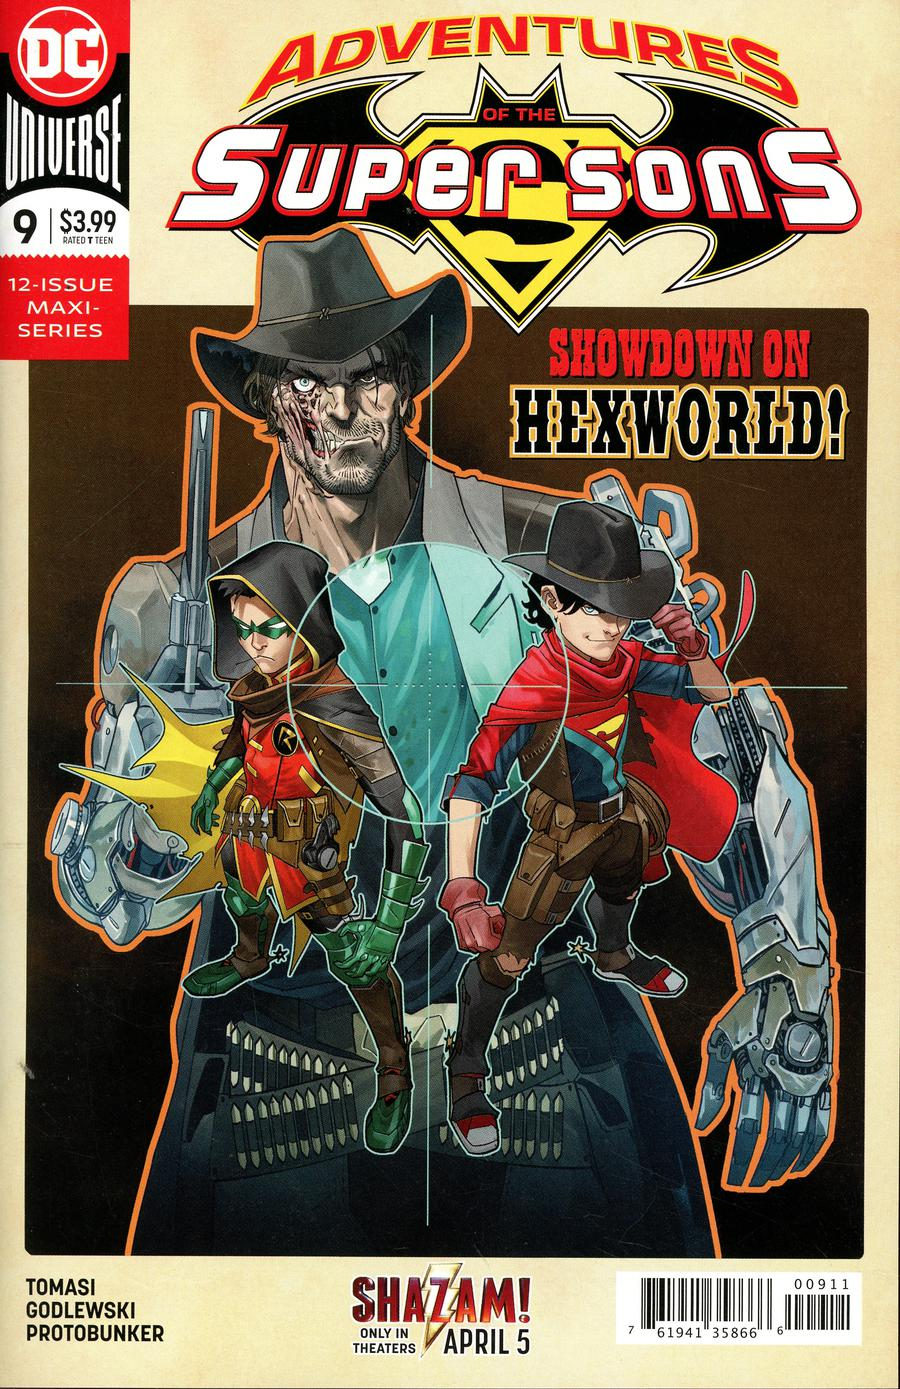 Adventures Of The Super Sons #9